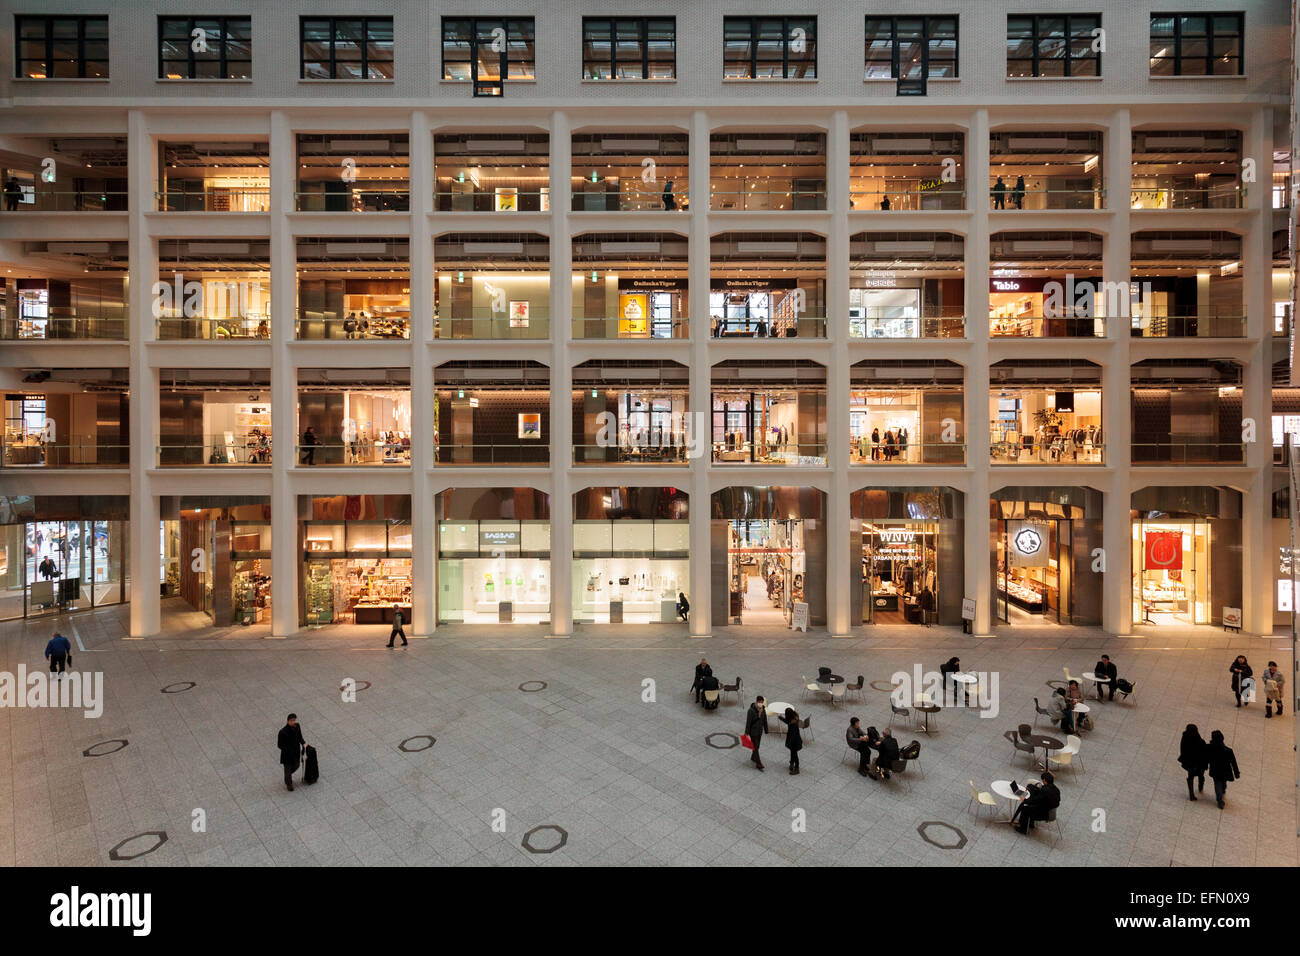 Japan Post (JP) Tower shopping mall in Maranouchi, Tokyo, Japan  Friday January 30th 2015. Stock Photo